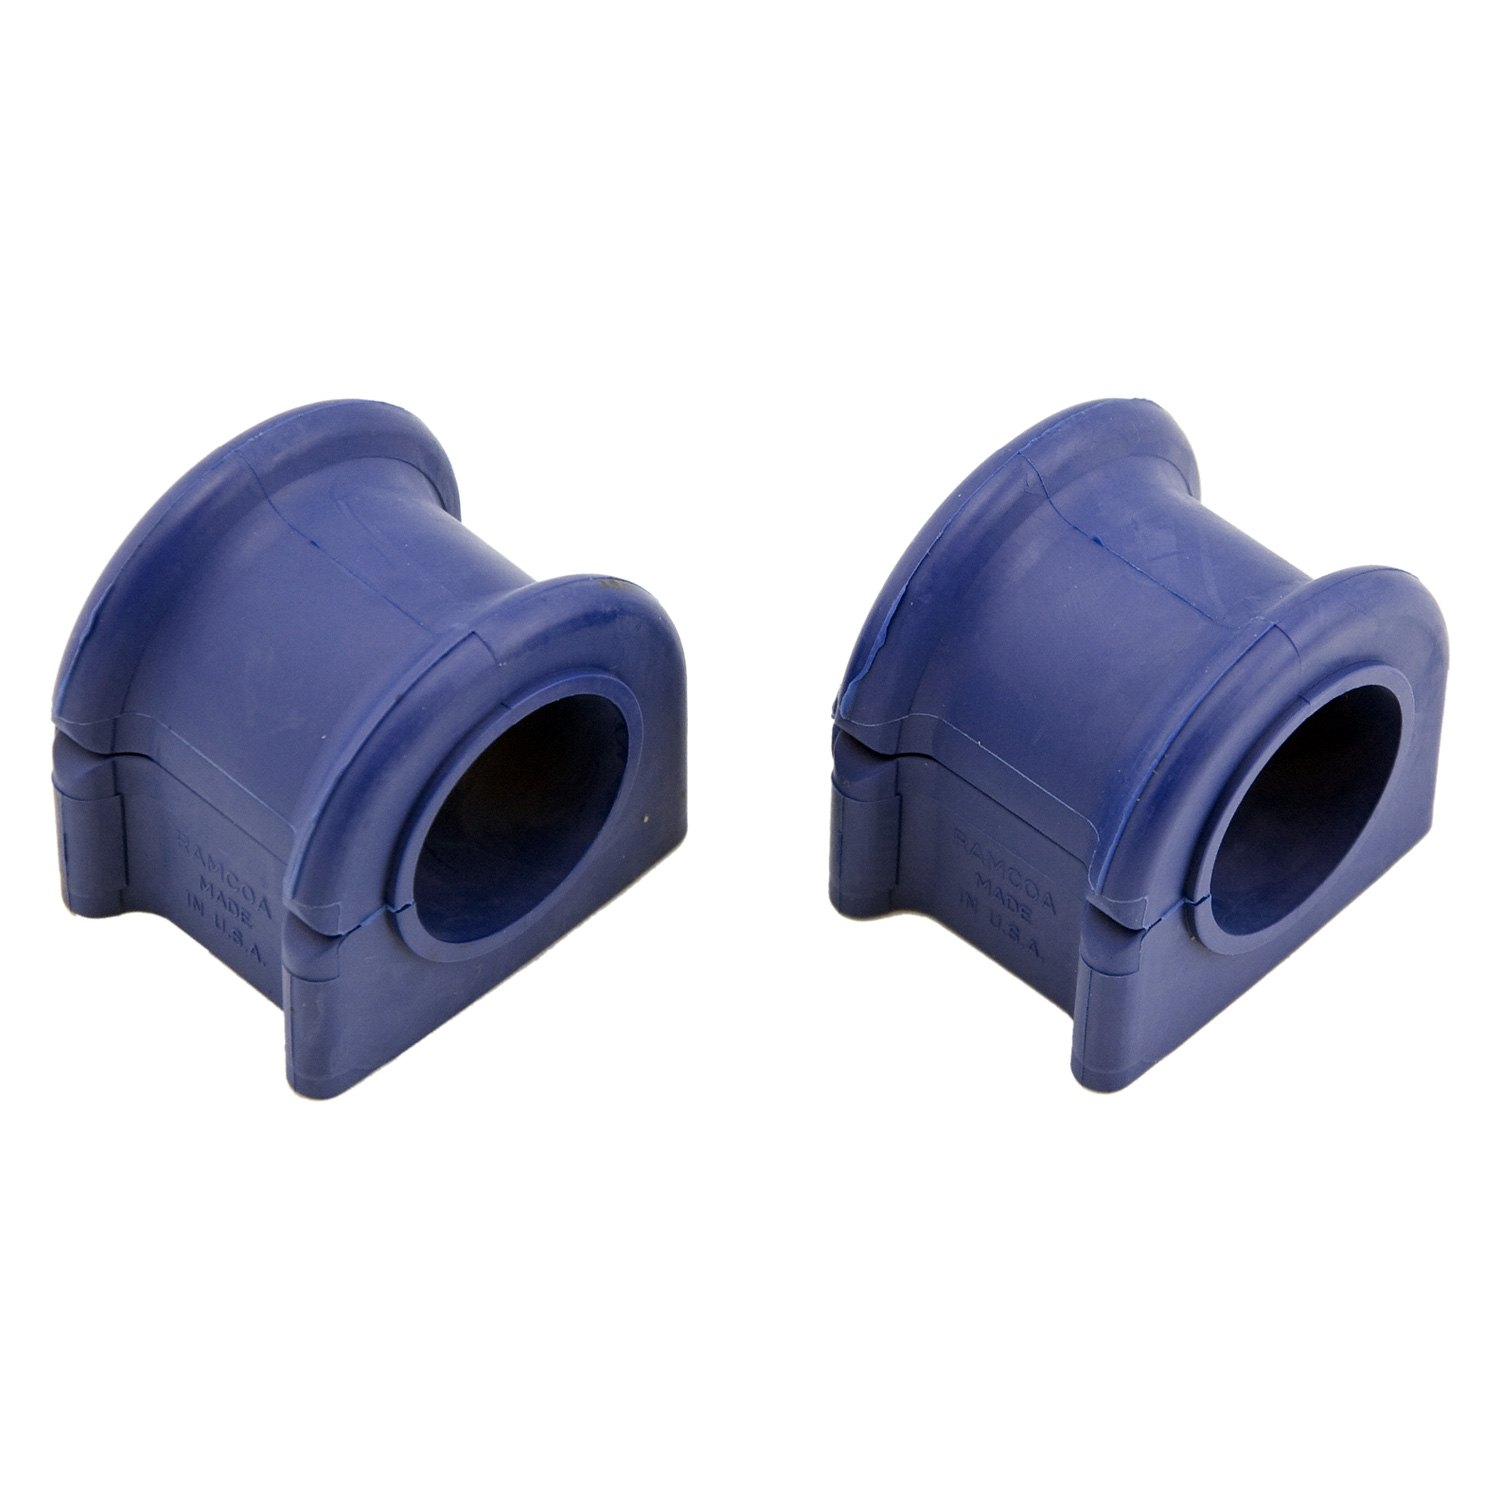 Honda Prelude Coupe 1997 2001 Split Design Sway: Ford Sport Trac 2002 Front Sway Bar Bushings